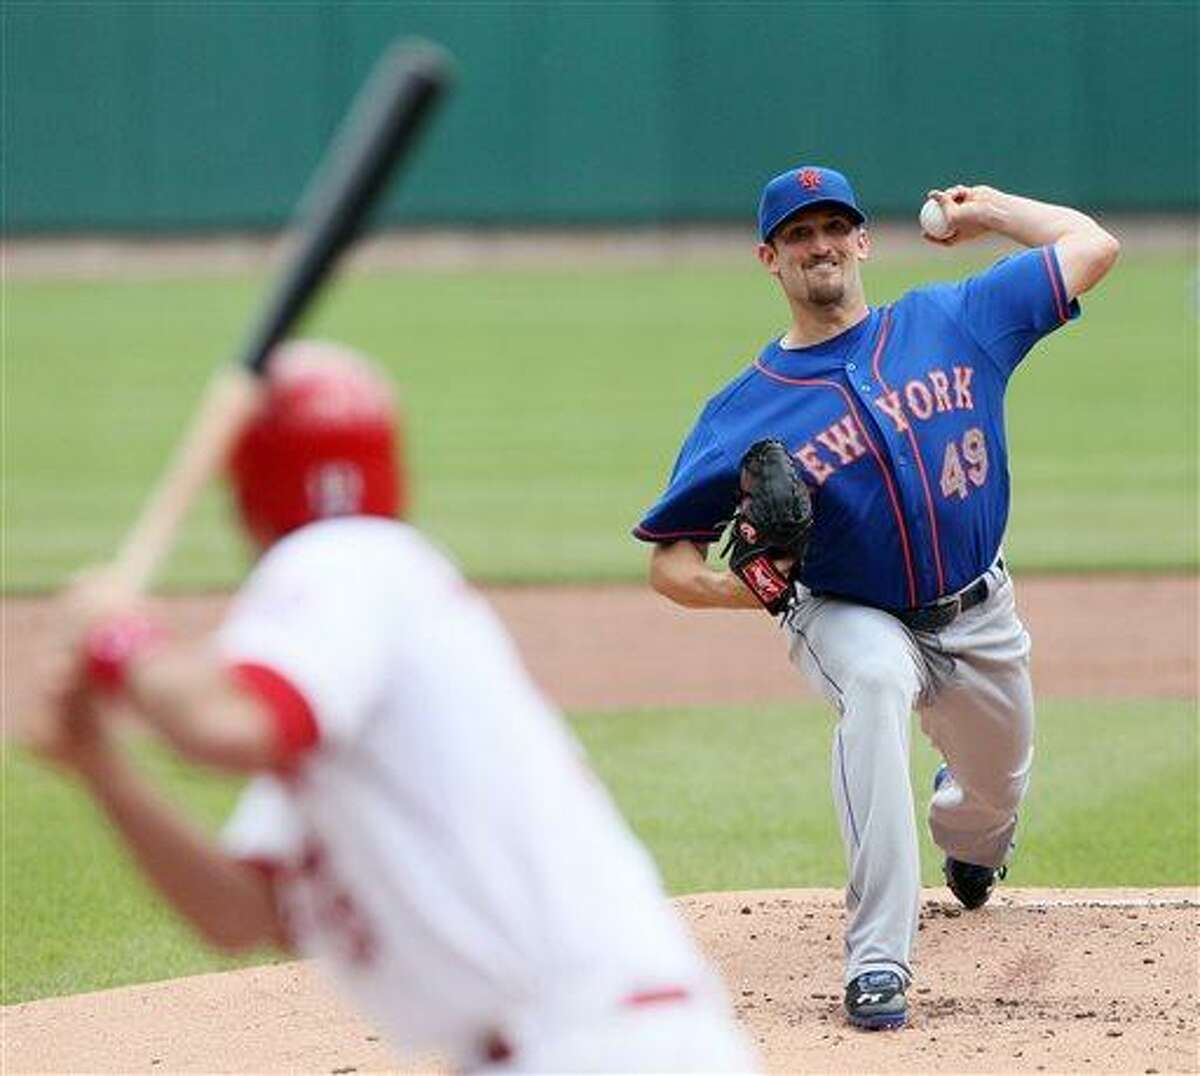 New York Mets starting pitcher Jonathon Niese throws against the St. Louis Cardinals during a basesball game Thursday, May 16, 2013, in St. Louis. (AP Photo/St. Louis Post-Dispatch, Chris Lee) EDWARDSVILLE INTELLIGENCER OUT; THE ALTON TELEGRAPH OUT